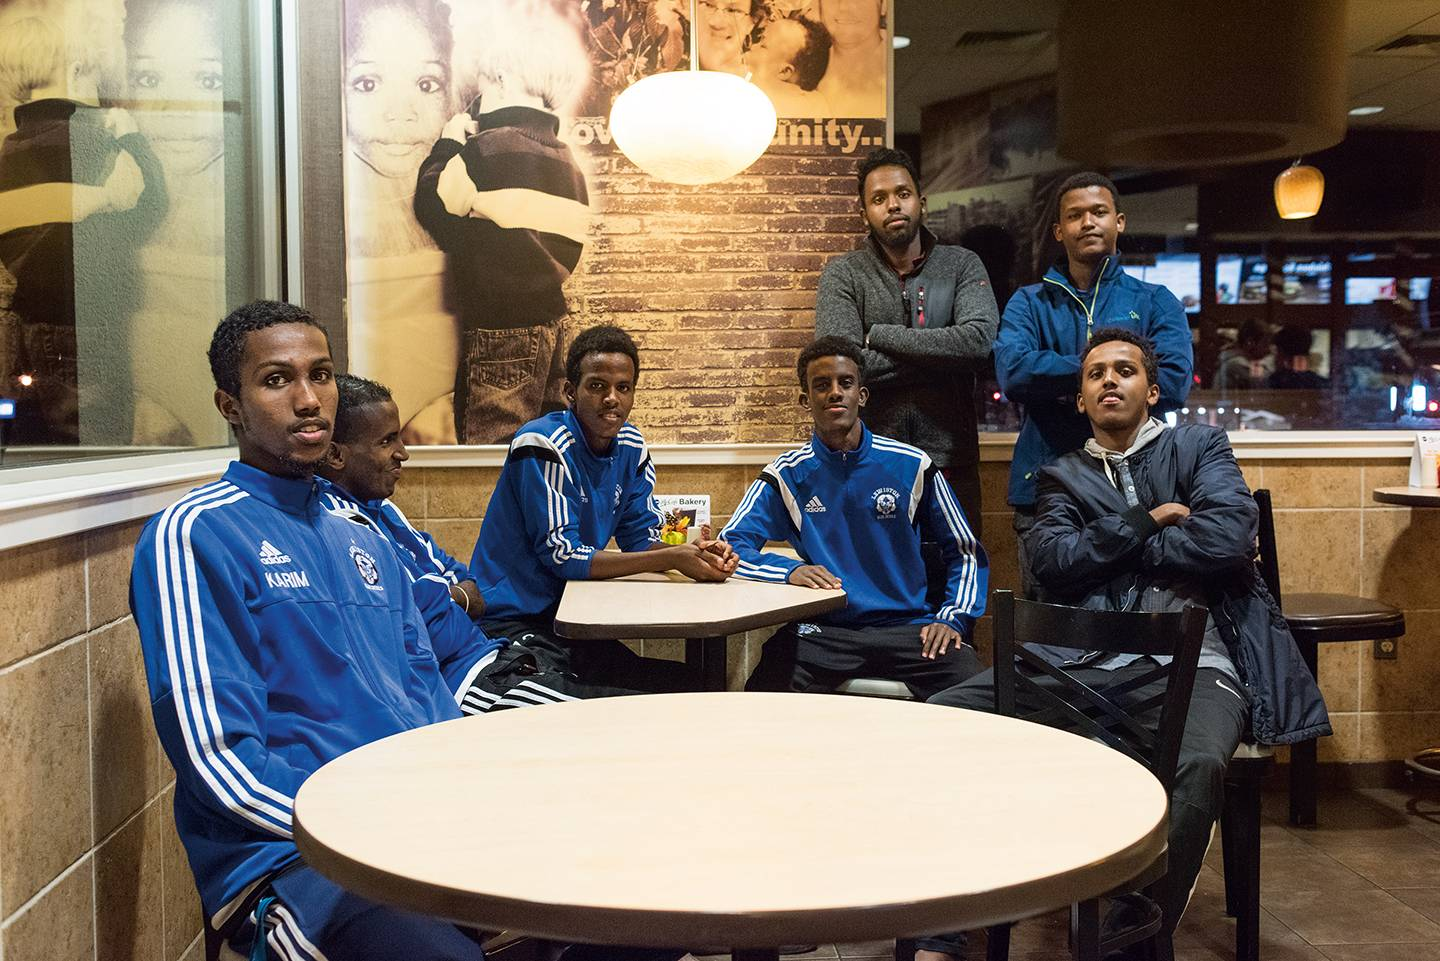 Soccer team in a fast food restaurant